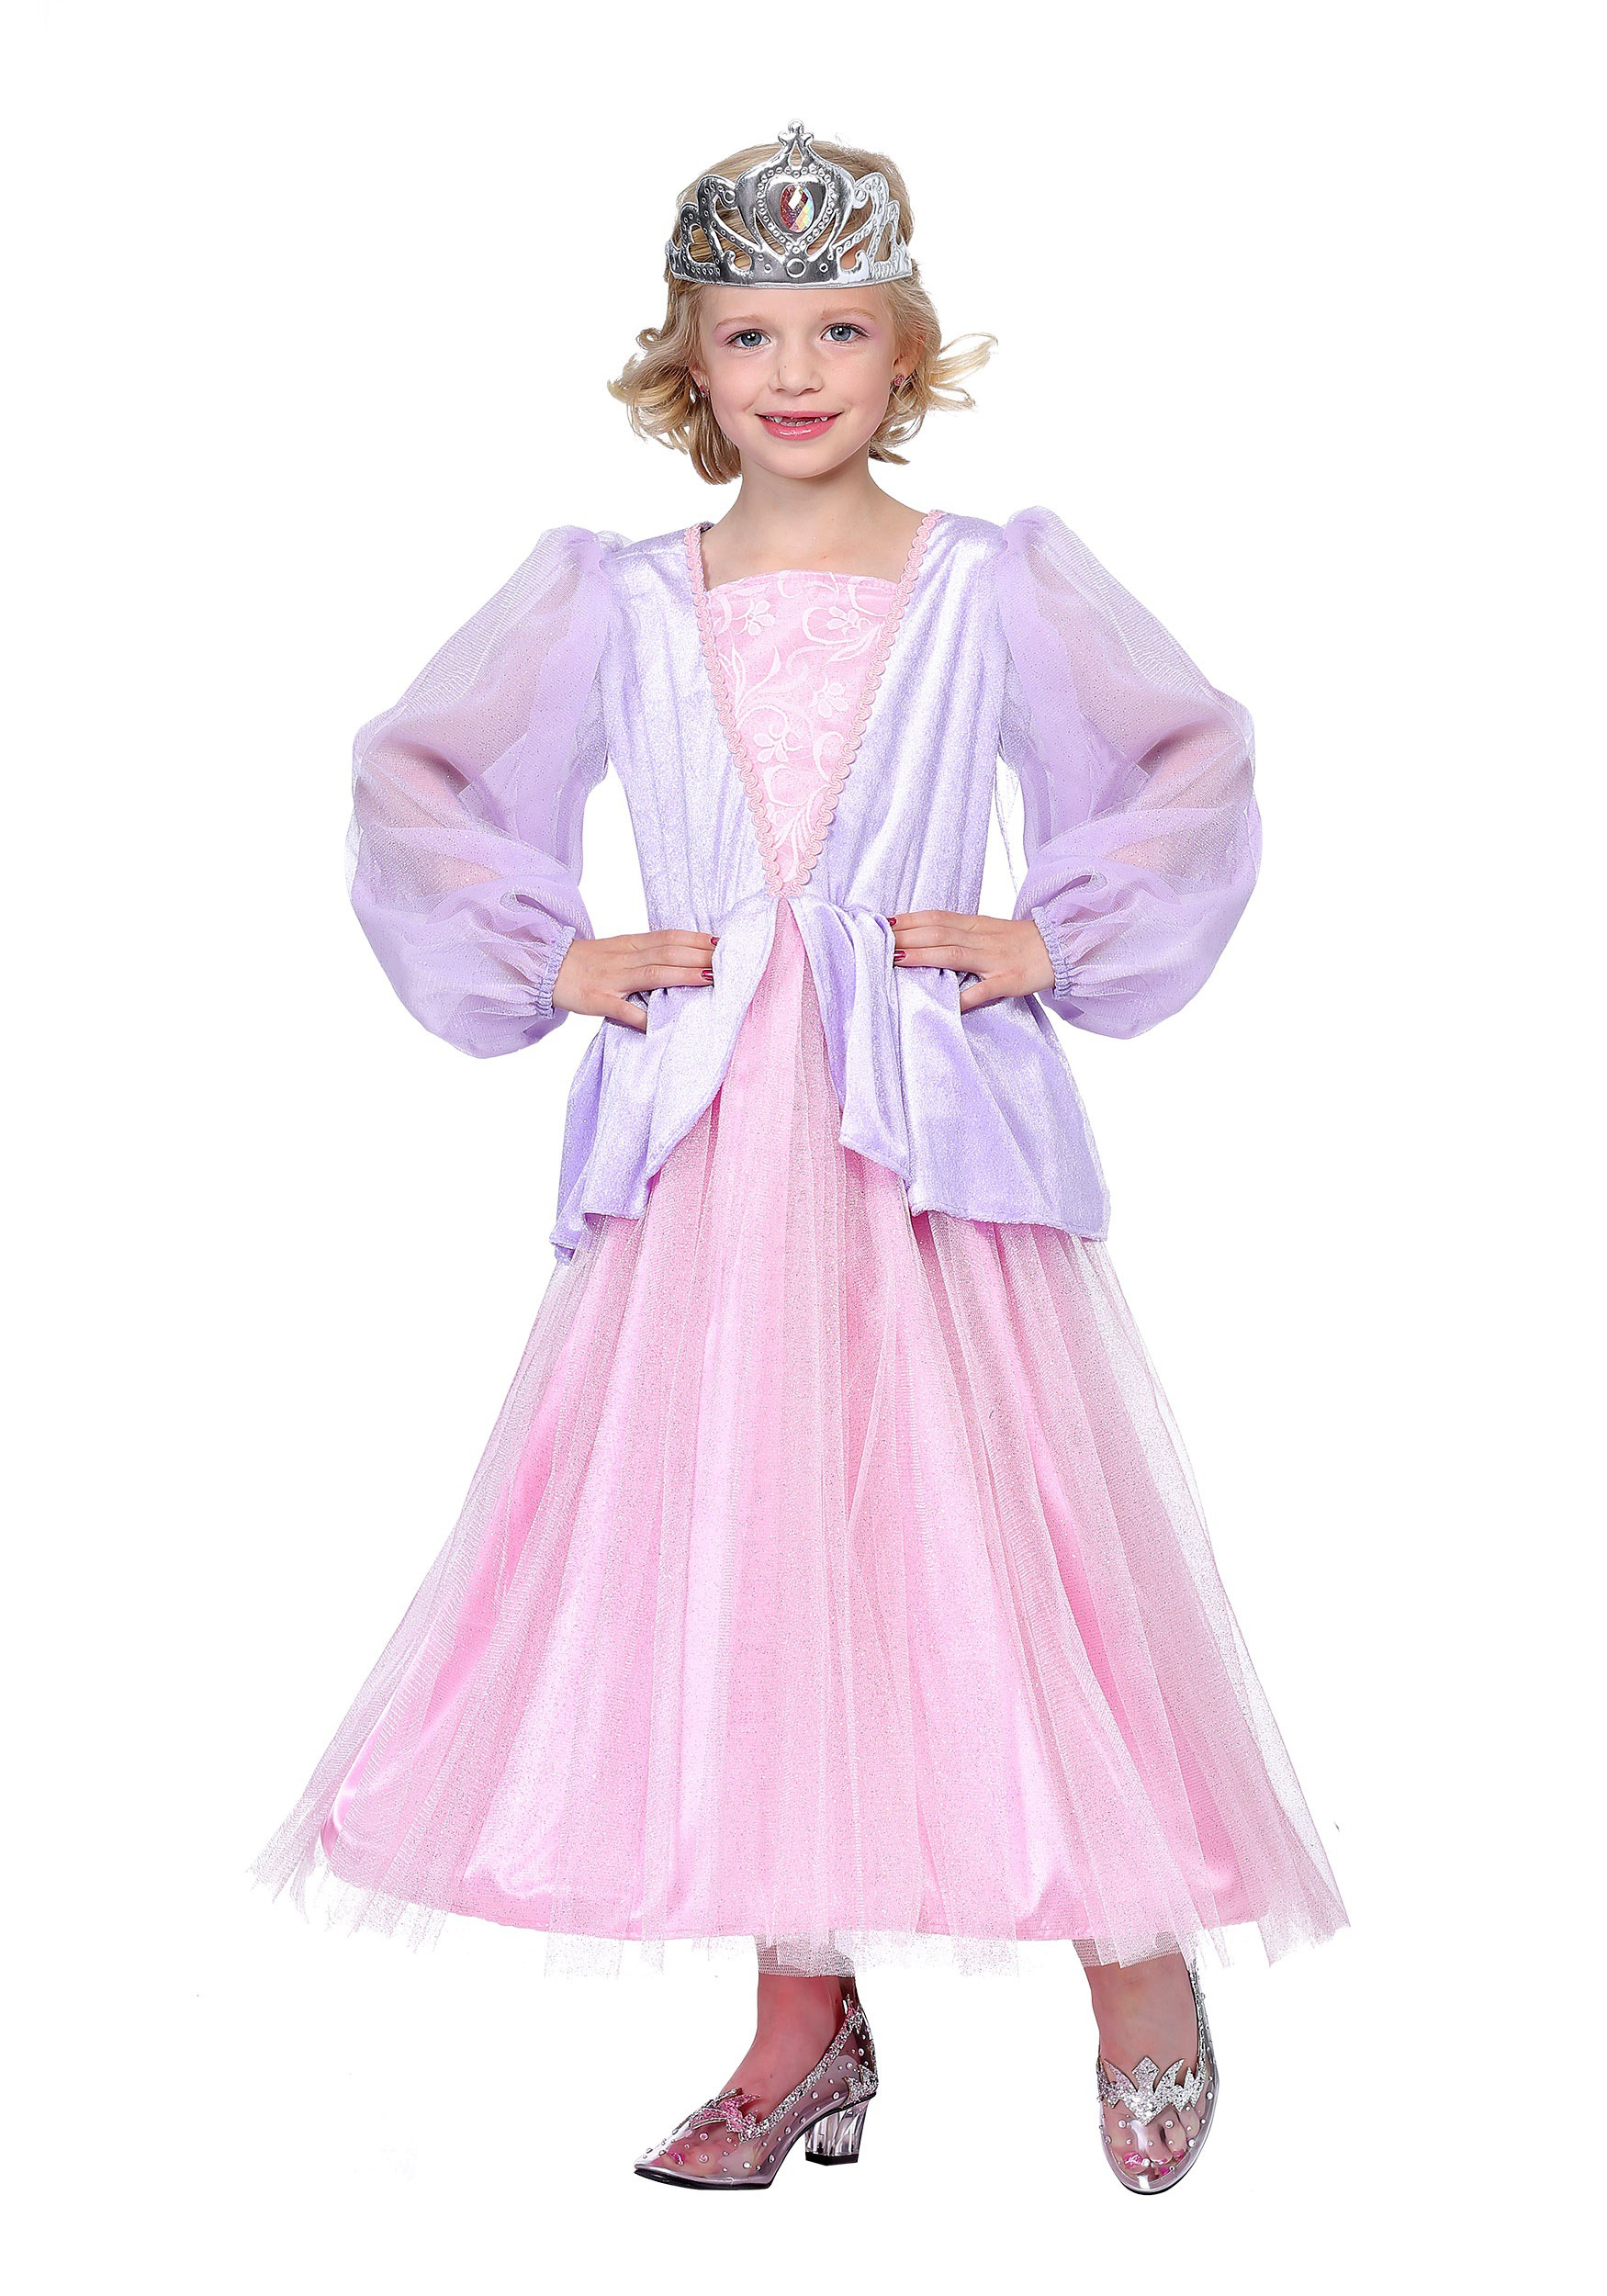 Pink and Lavender Princess Costume for Girls